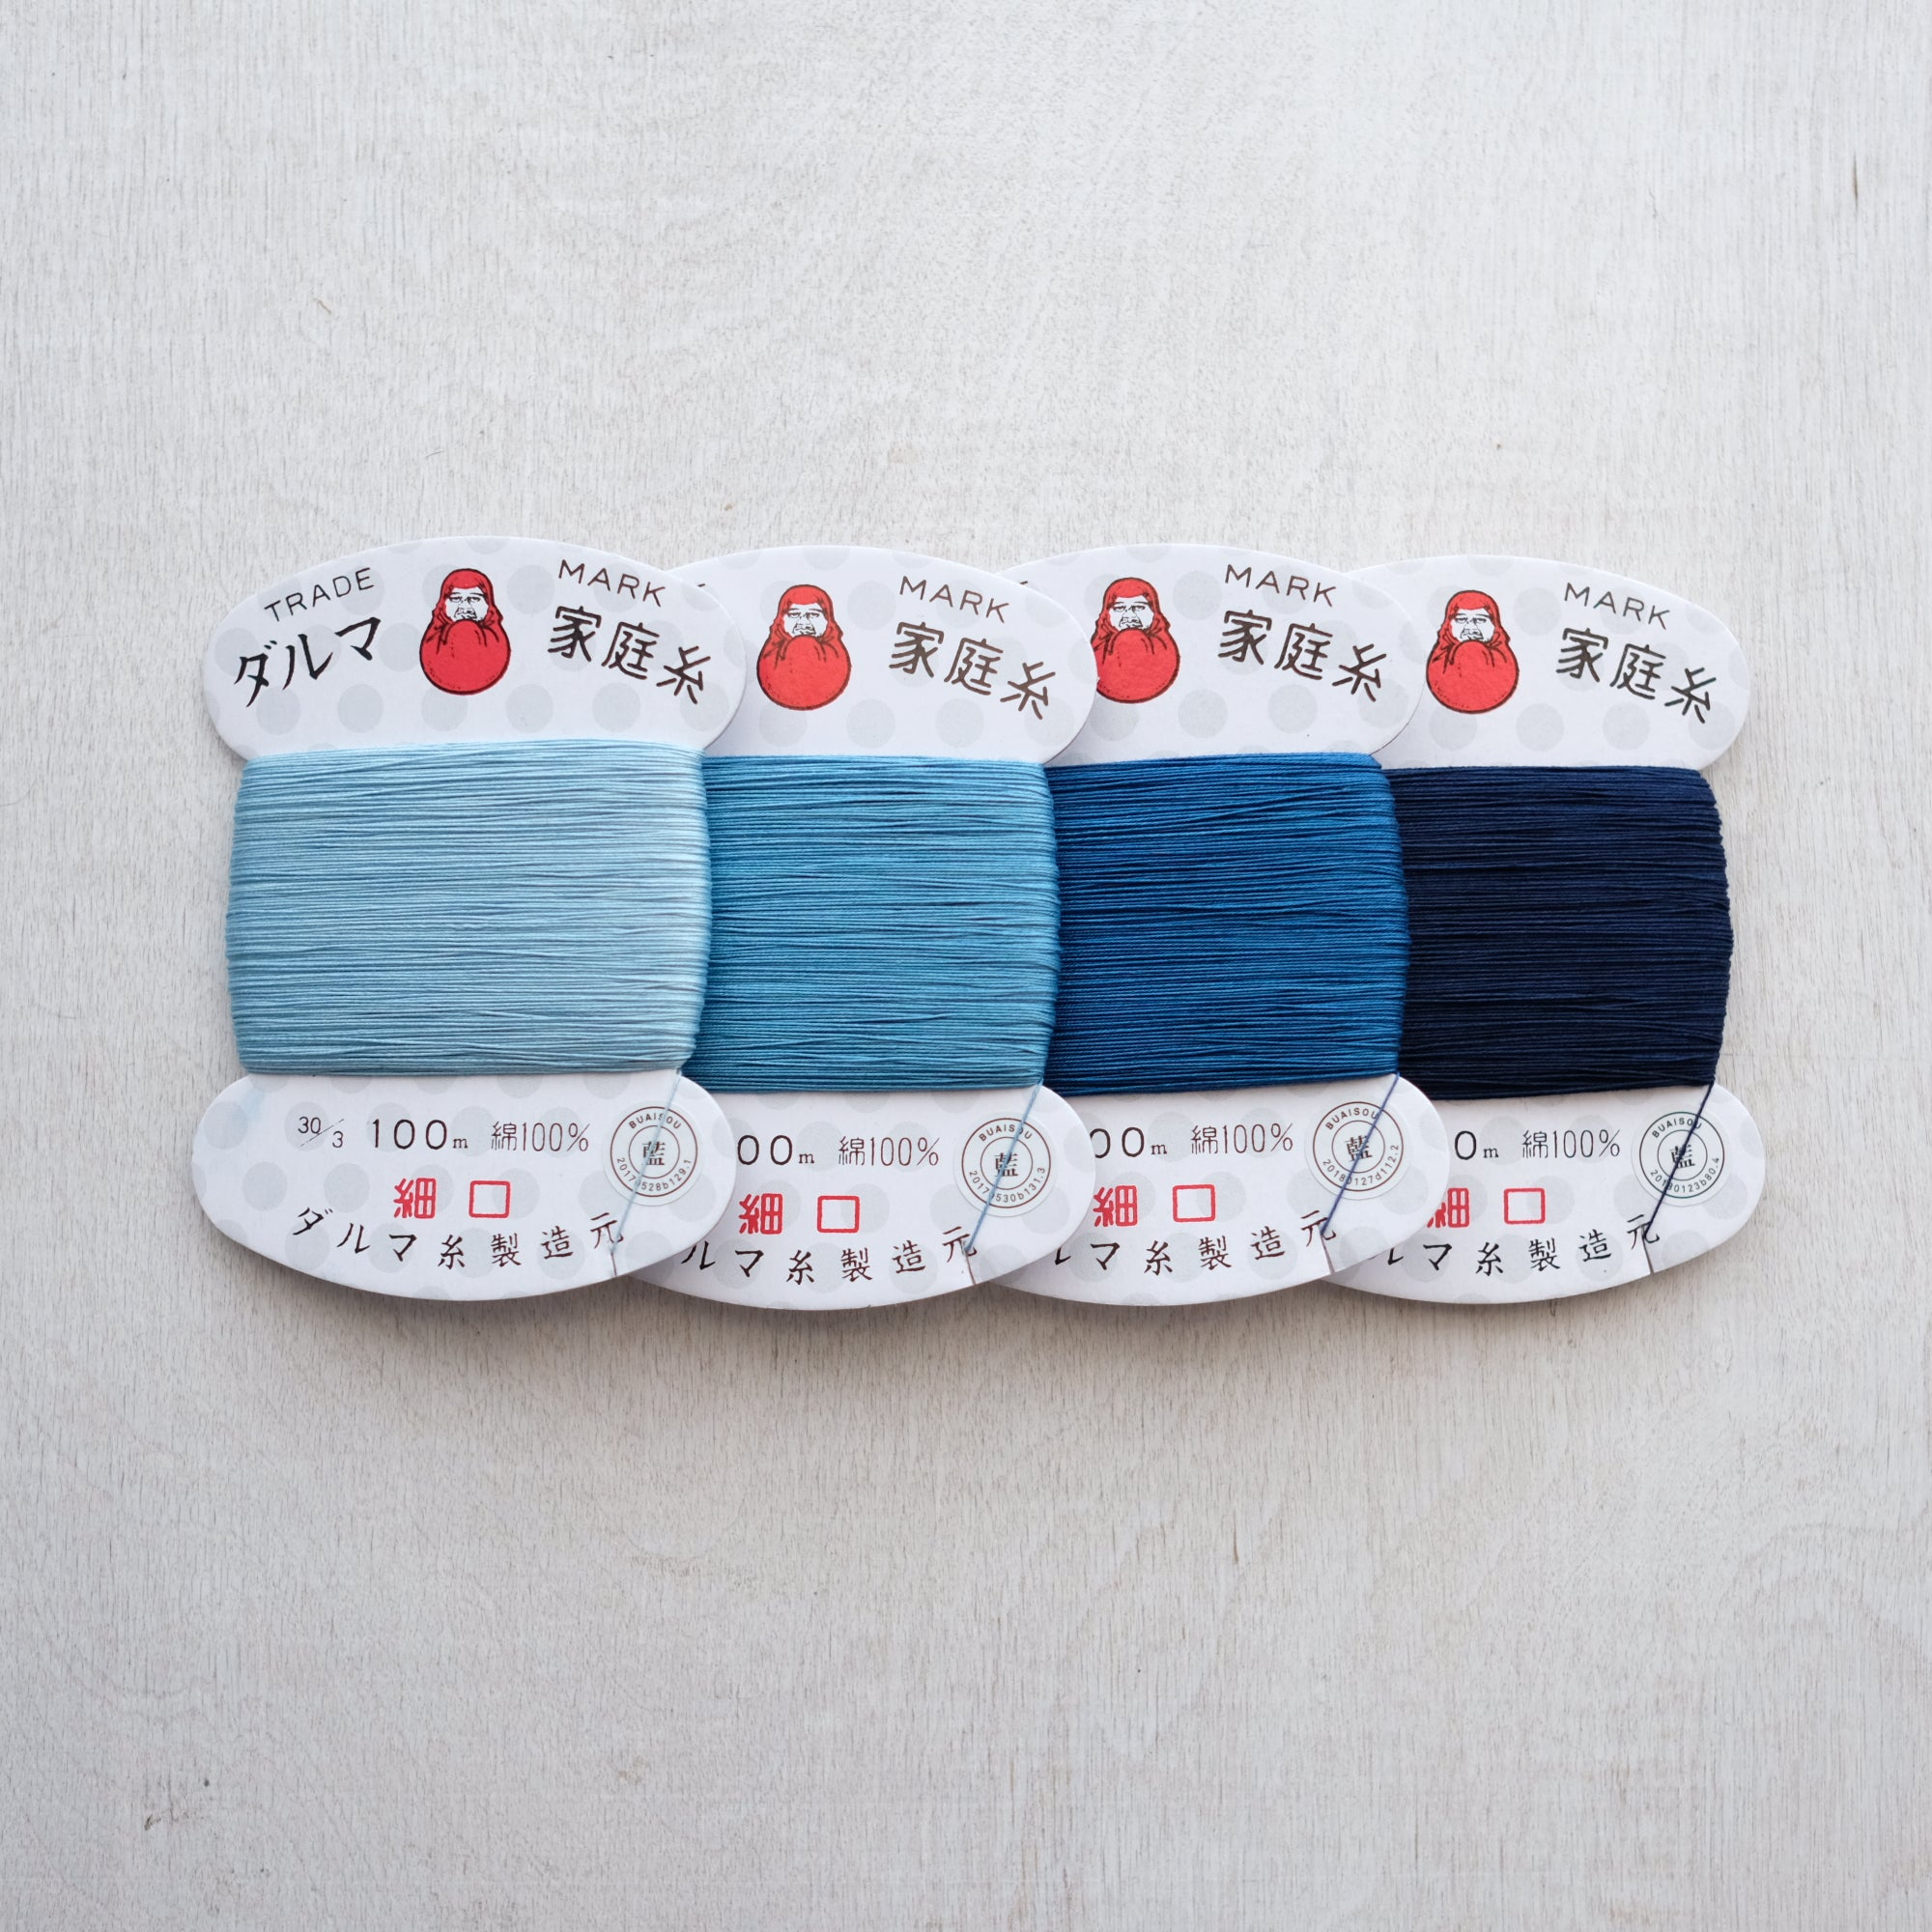 Buaisou - Indigo Dyed Thread - Just restocked!